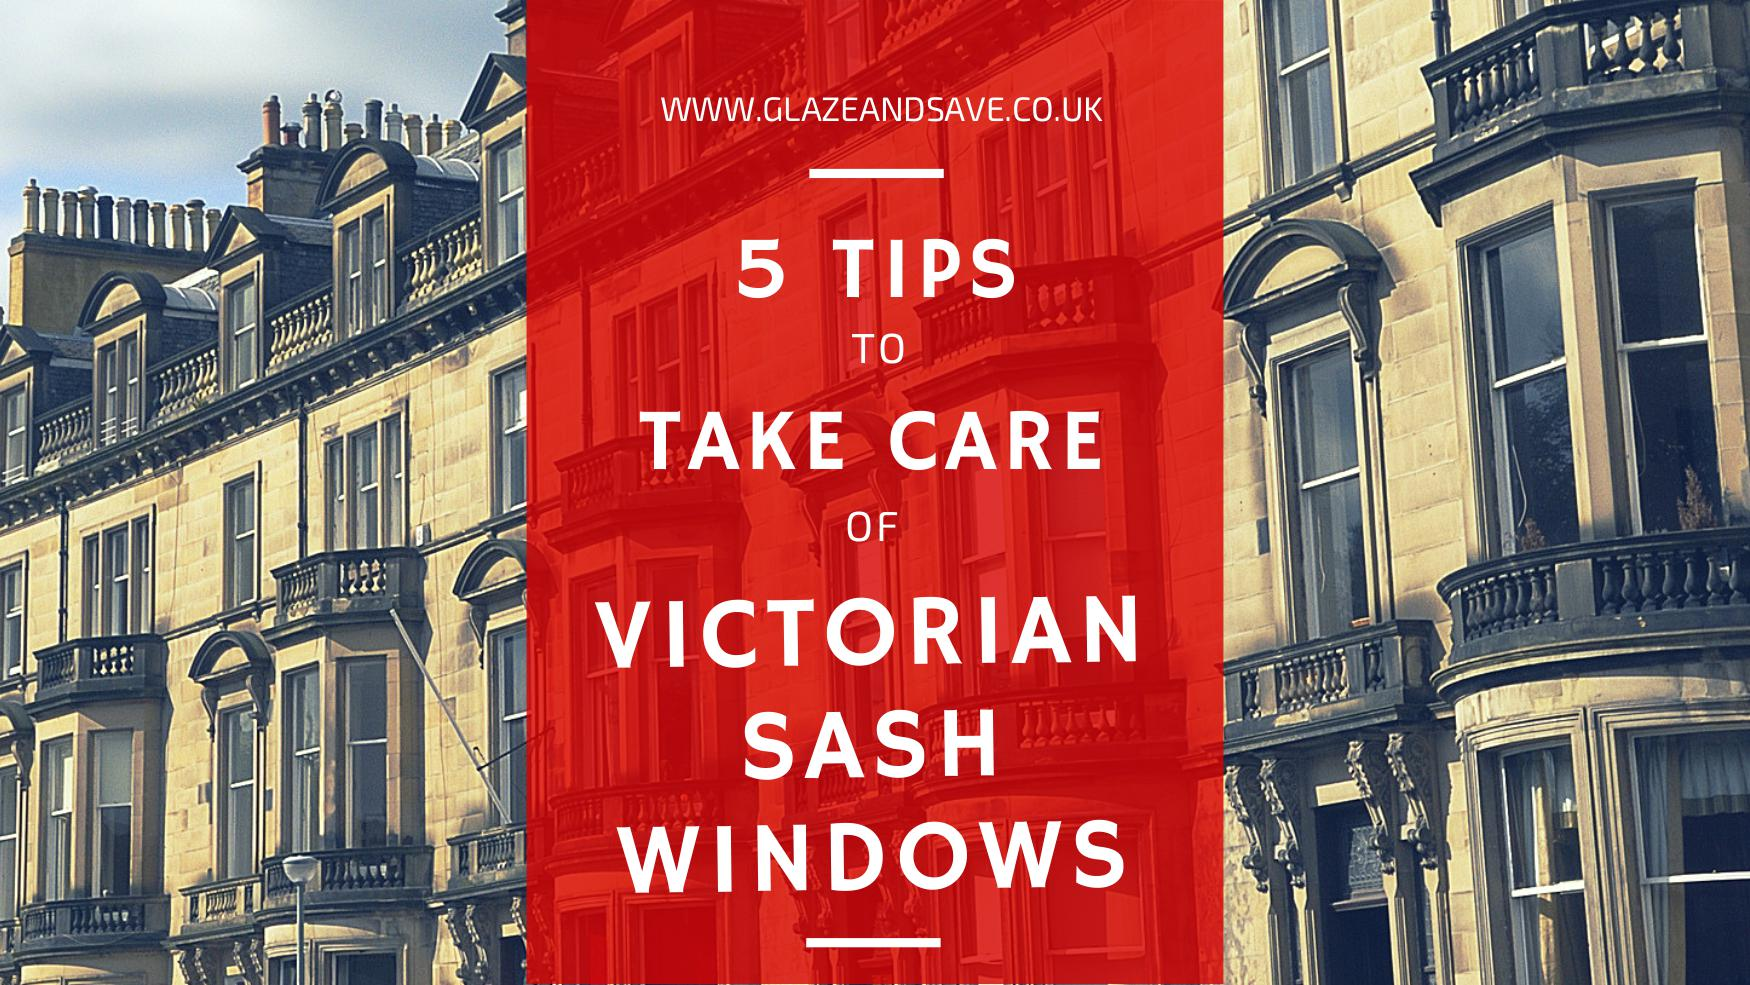 Five tips to take care of victorian sash windows by Glaze and Save: bespoke magnetic secondary glazing www.glazeandsave.co.uk